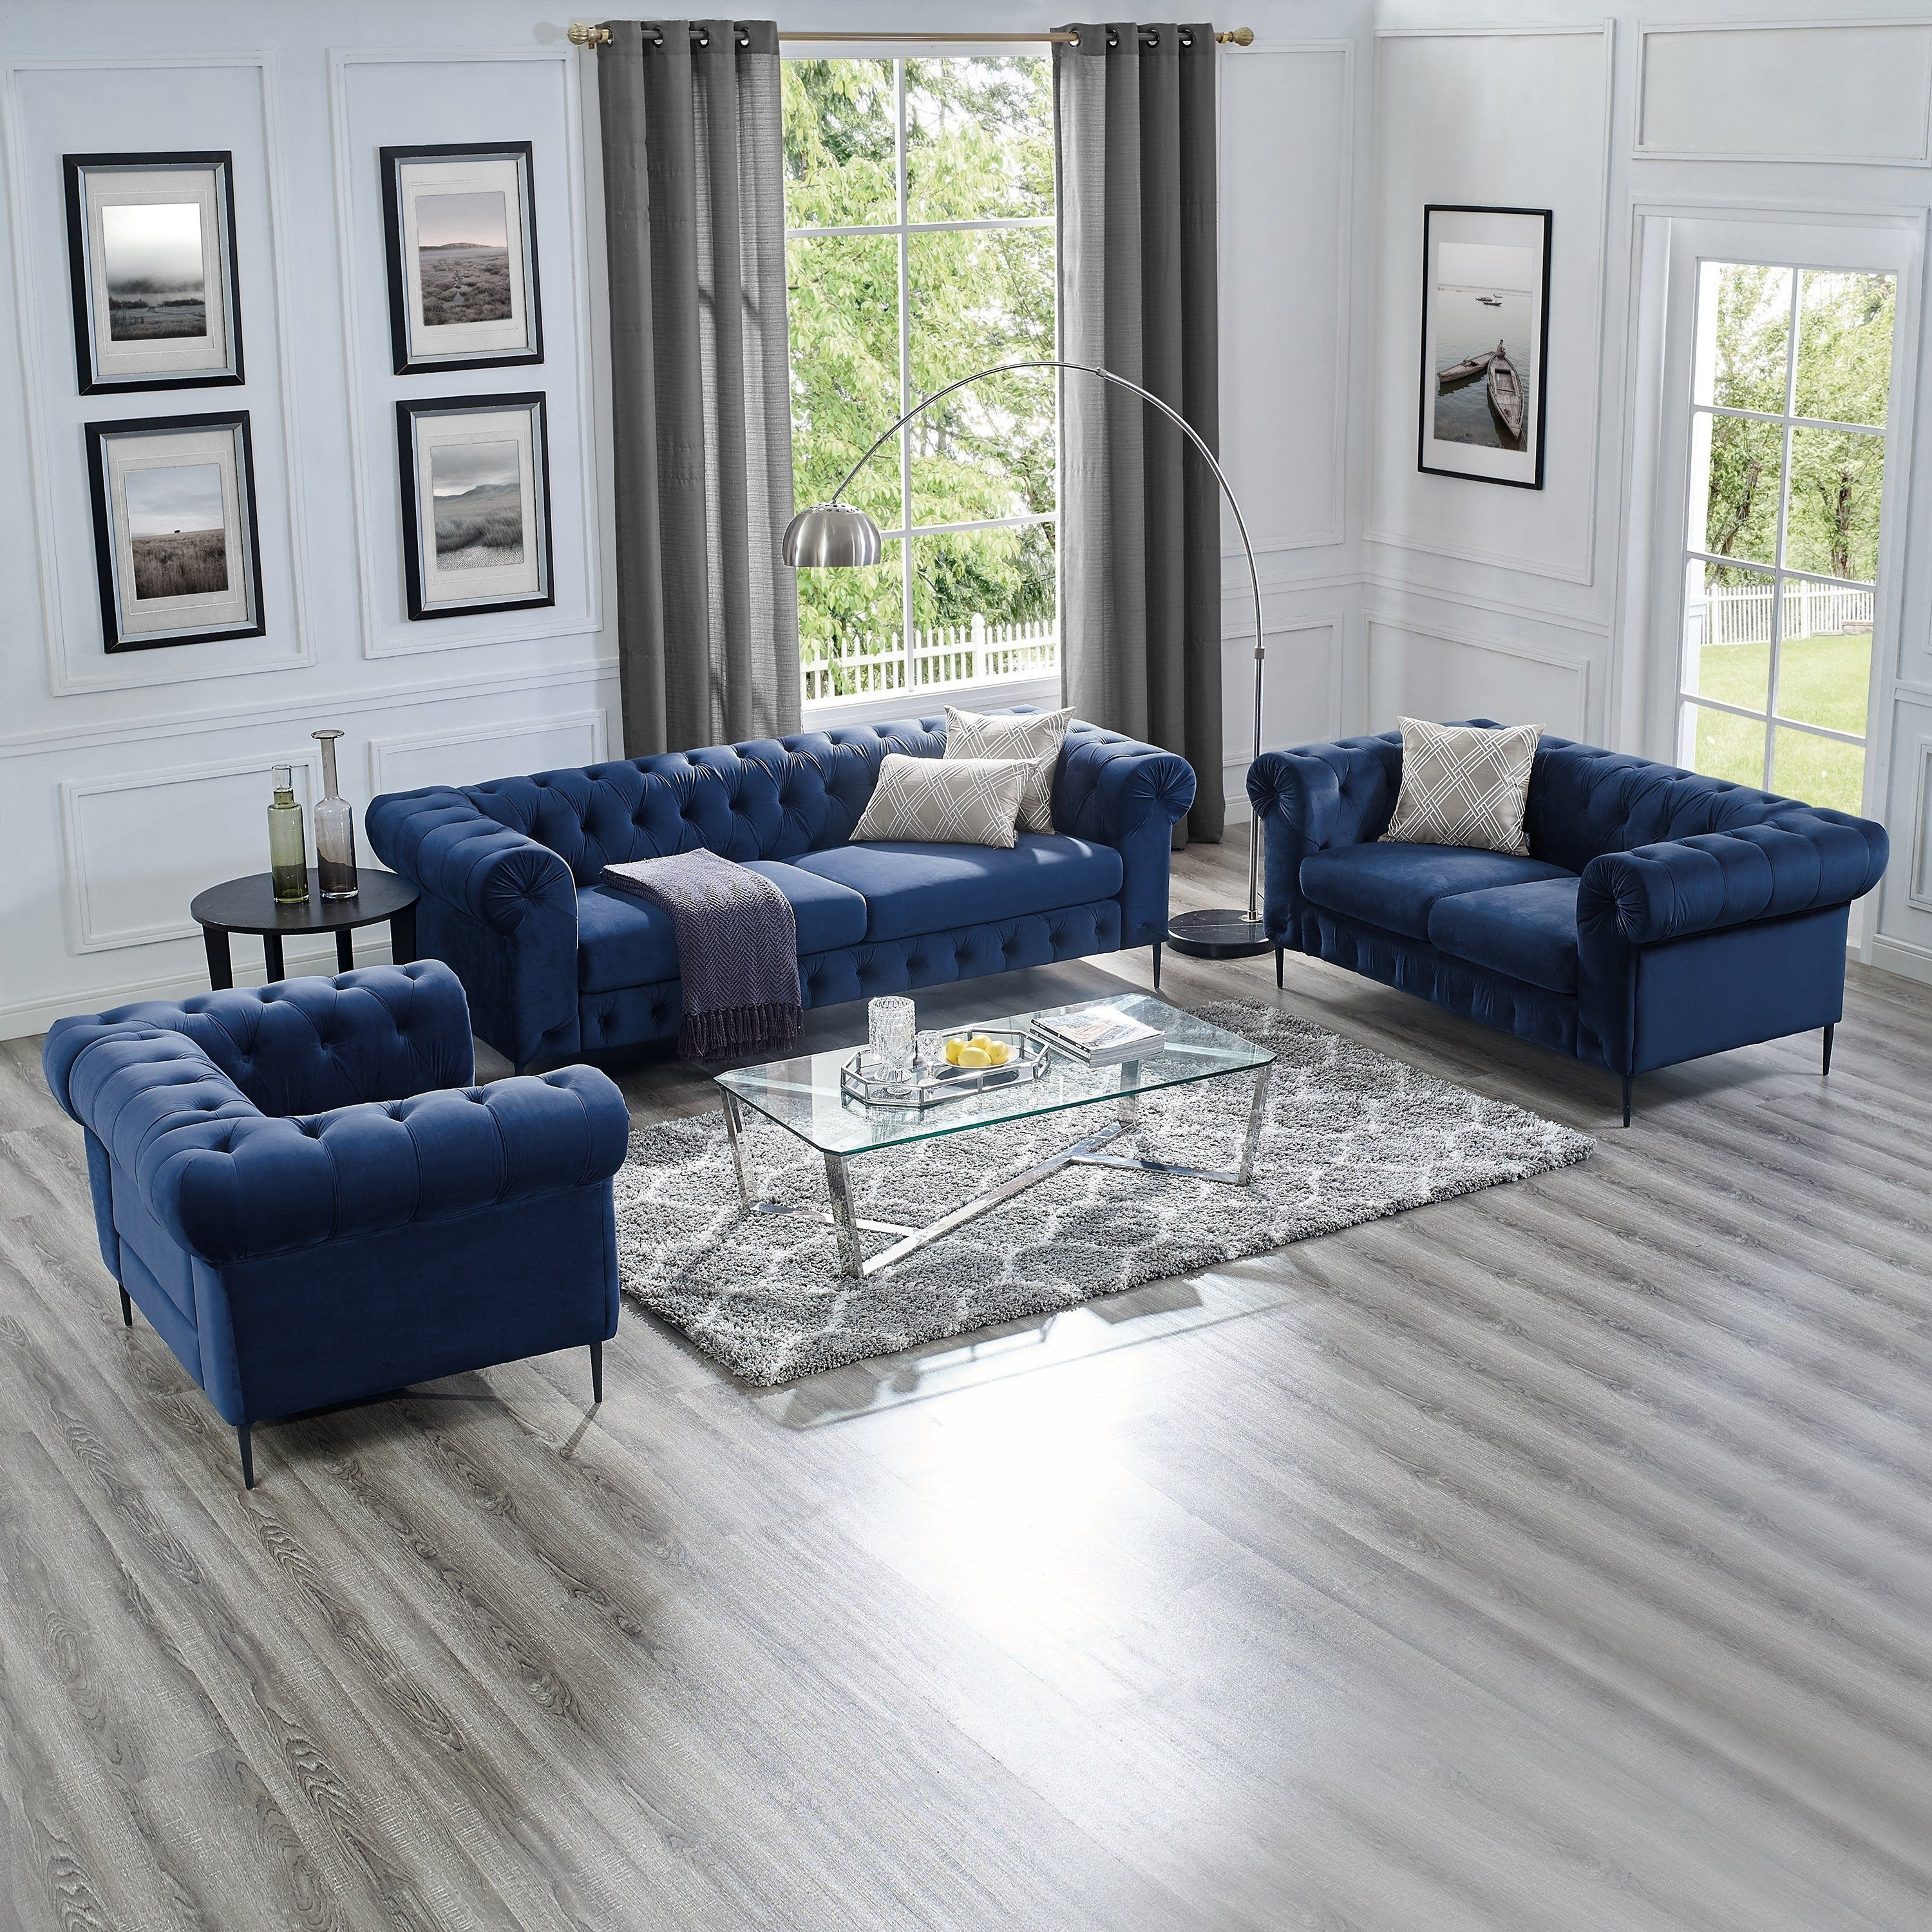 Corvus Prato 3 Piece Tufted Velvet Sofa Rolled Arms Living Room Set Navy Blue Blue Sofas Living Room Blue Furniture Living Room Blue Living Room Sets